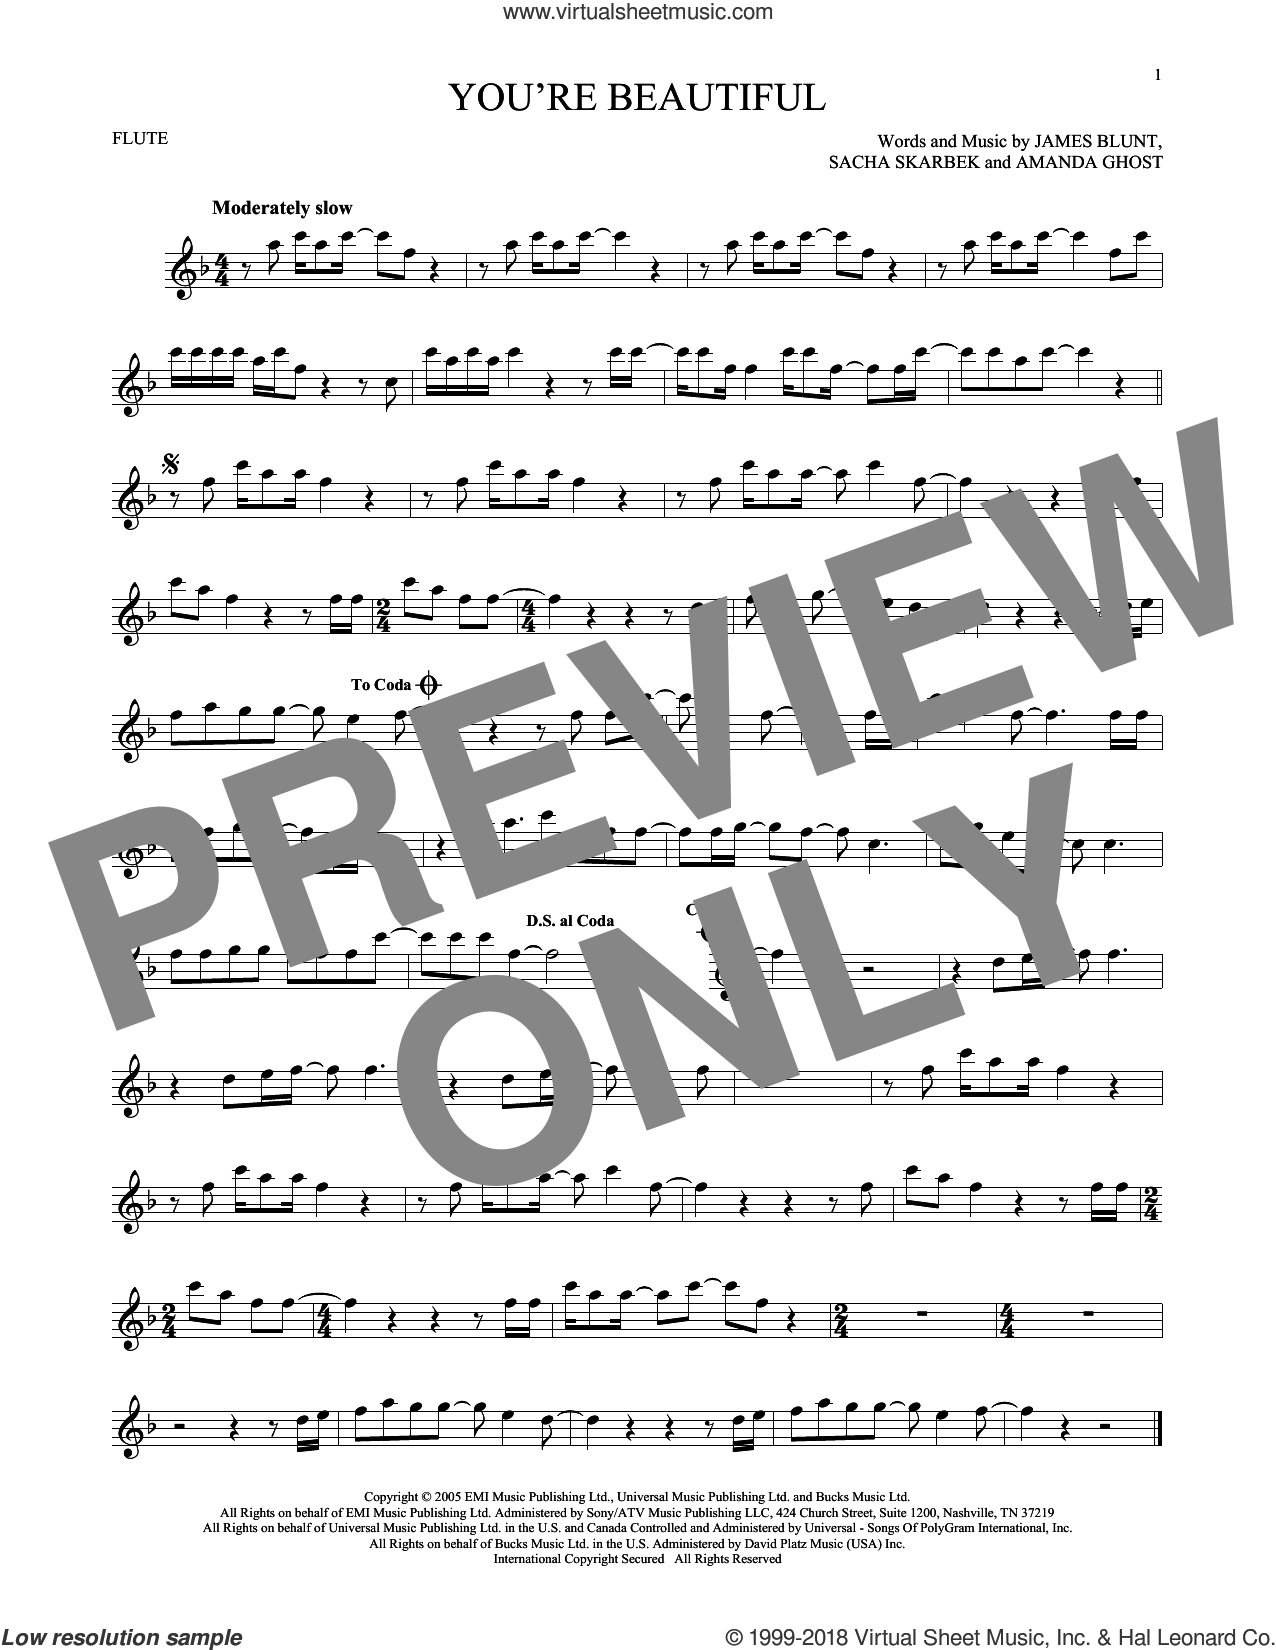 You're Beautiful sheet music for flute solo by James Blunt, Amanda Ghost and Sacha Skarbek, intermediate skill level